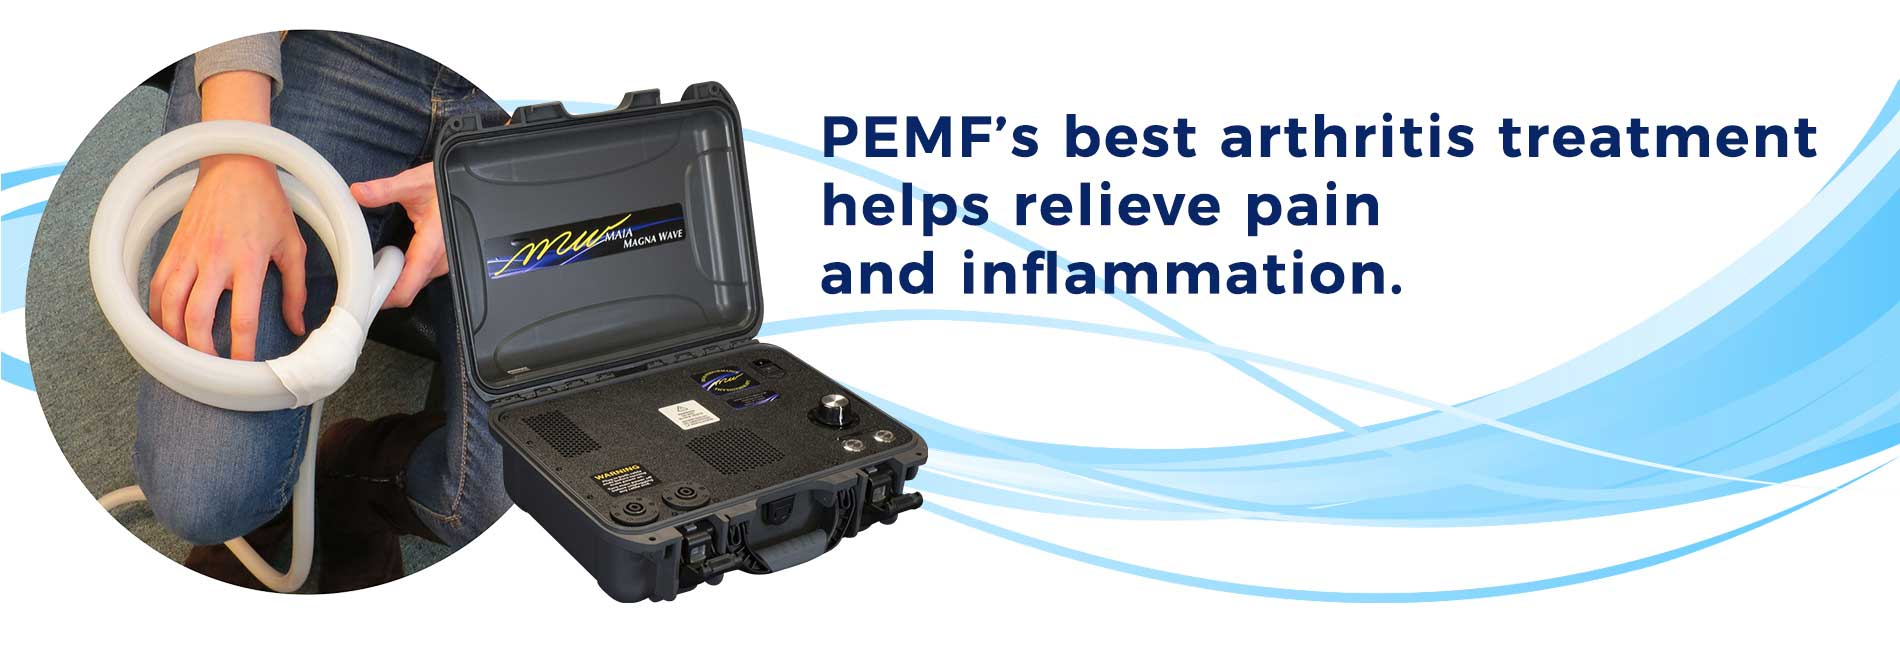 PEMF's best arthritis treatment helps relieve pain and inflammation